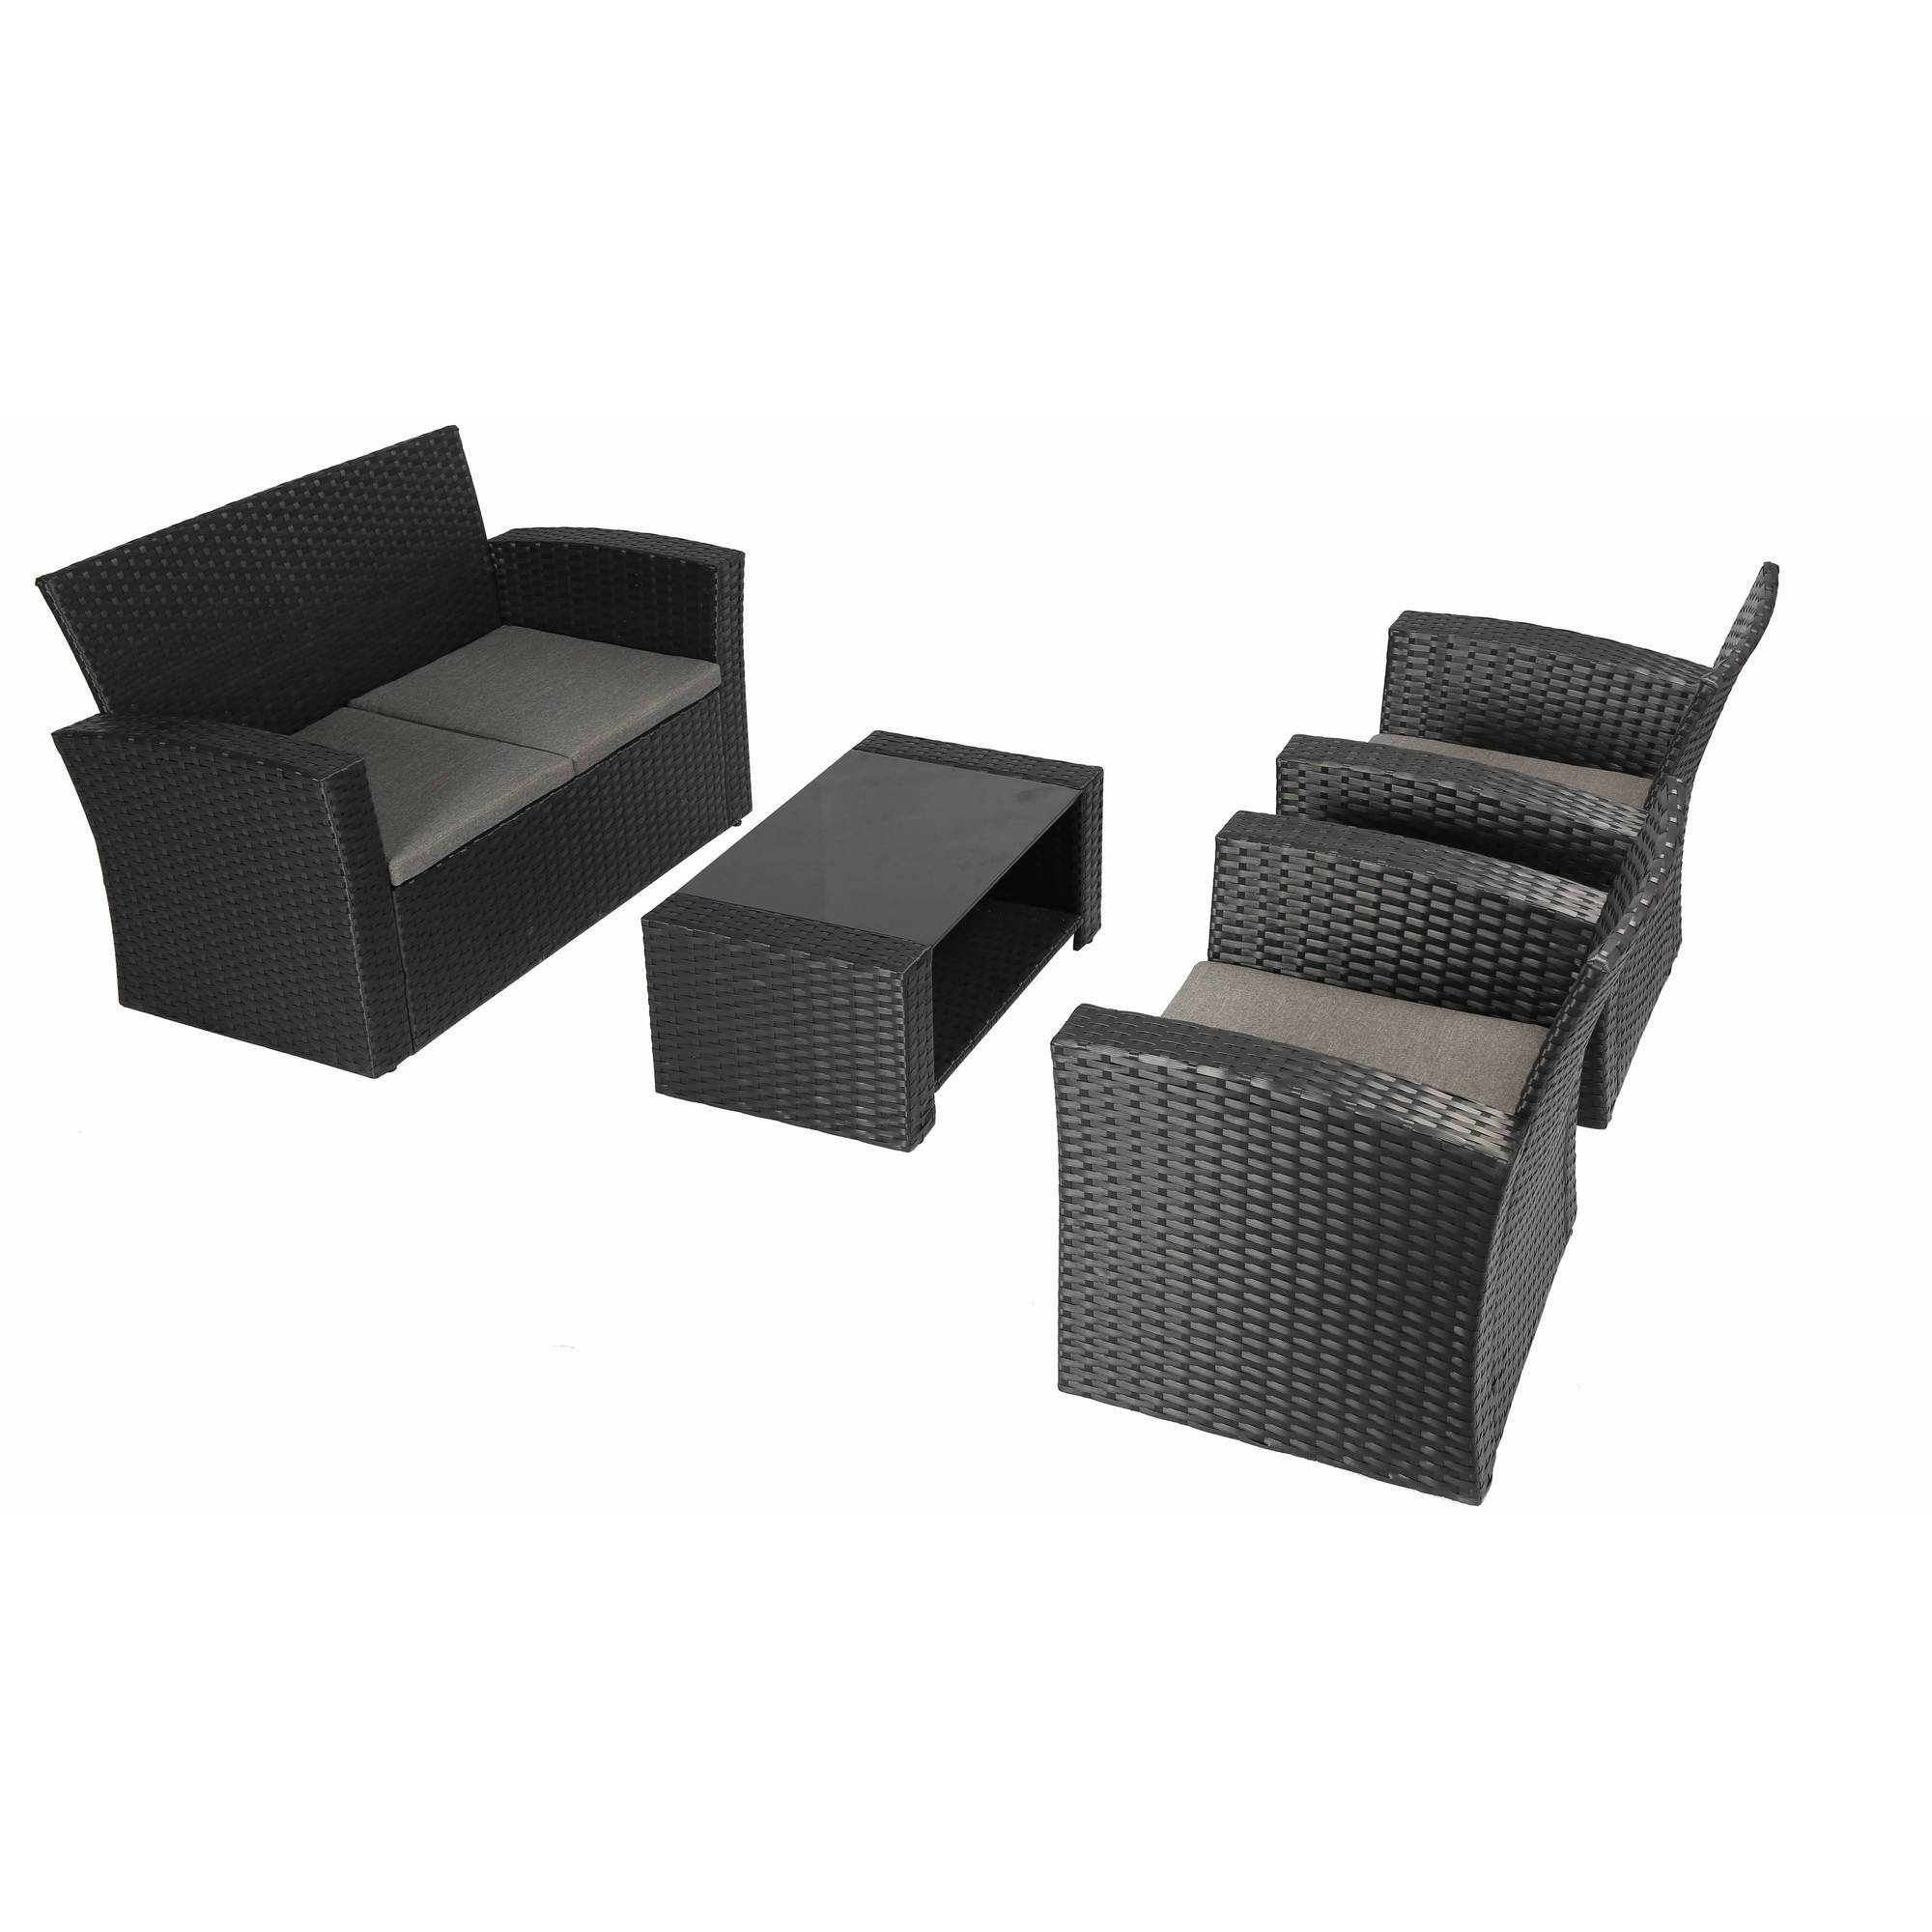 Marvelous Complete Patio 4 Piece Rattan Wicker Conversation Set Dhp Lamtechconsult Wood Chair Design Ideas Lamtechconsultcom